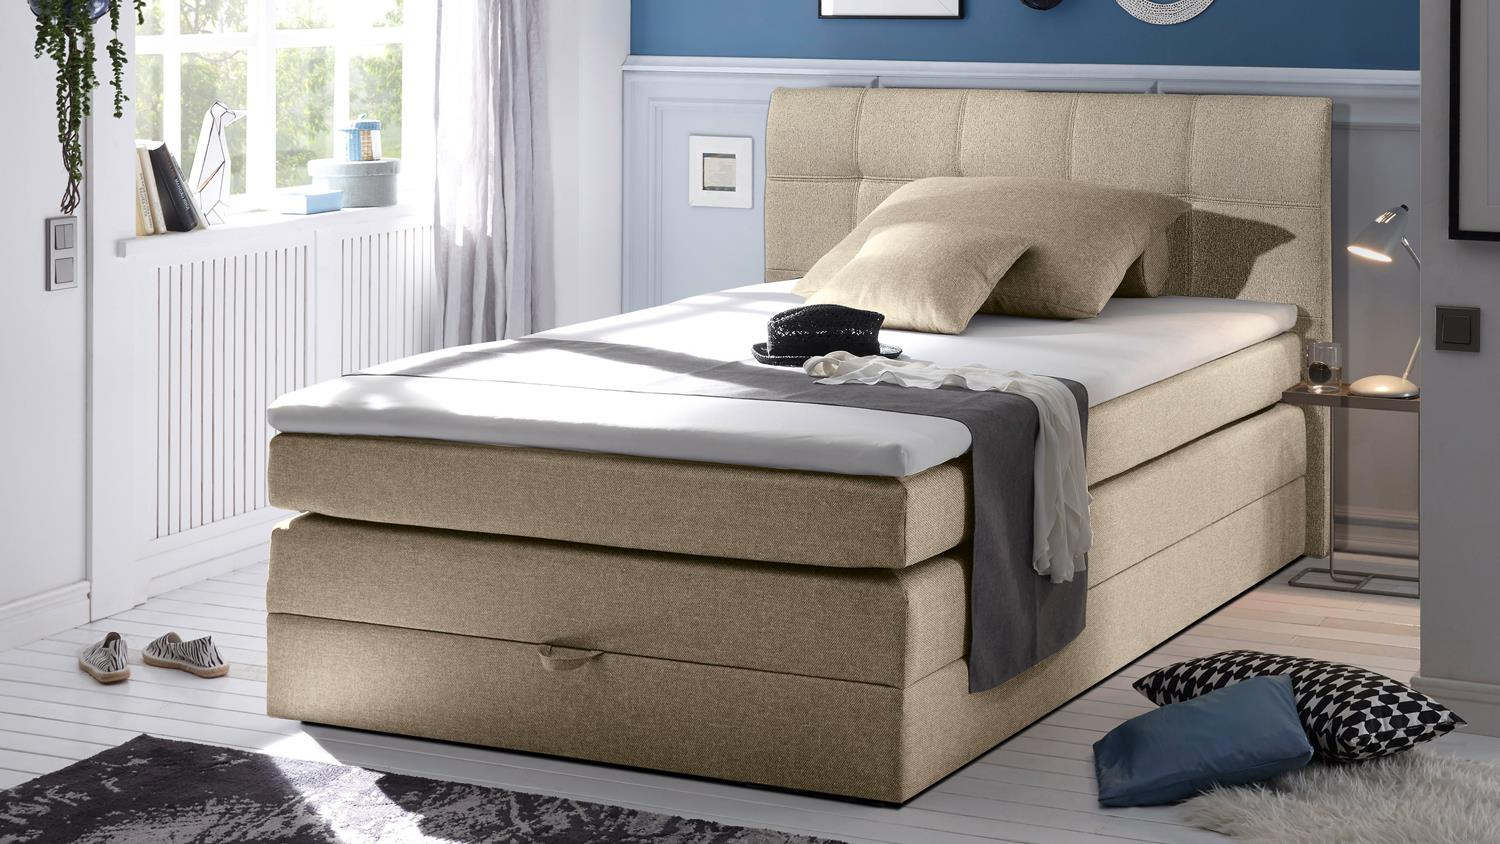 boxspringbett new bedford bett schlafzimmer beige mit topper 140x200. Black Bedroom Furniture Sets. Home Design Ideas